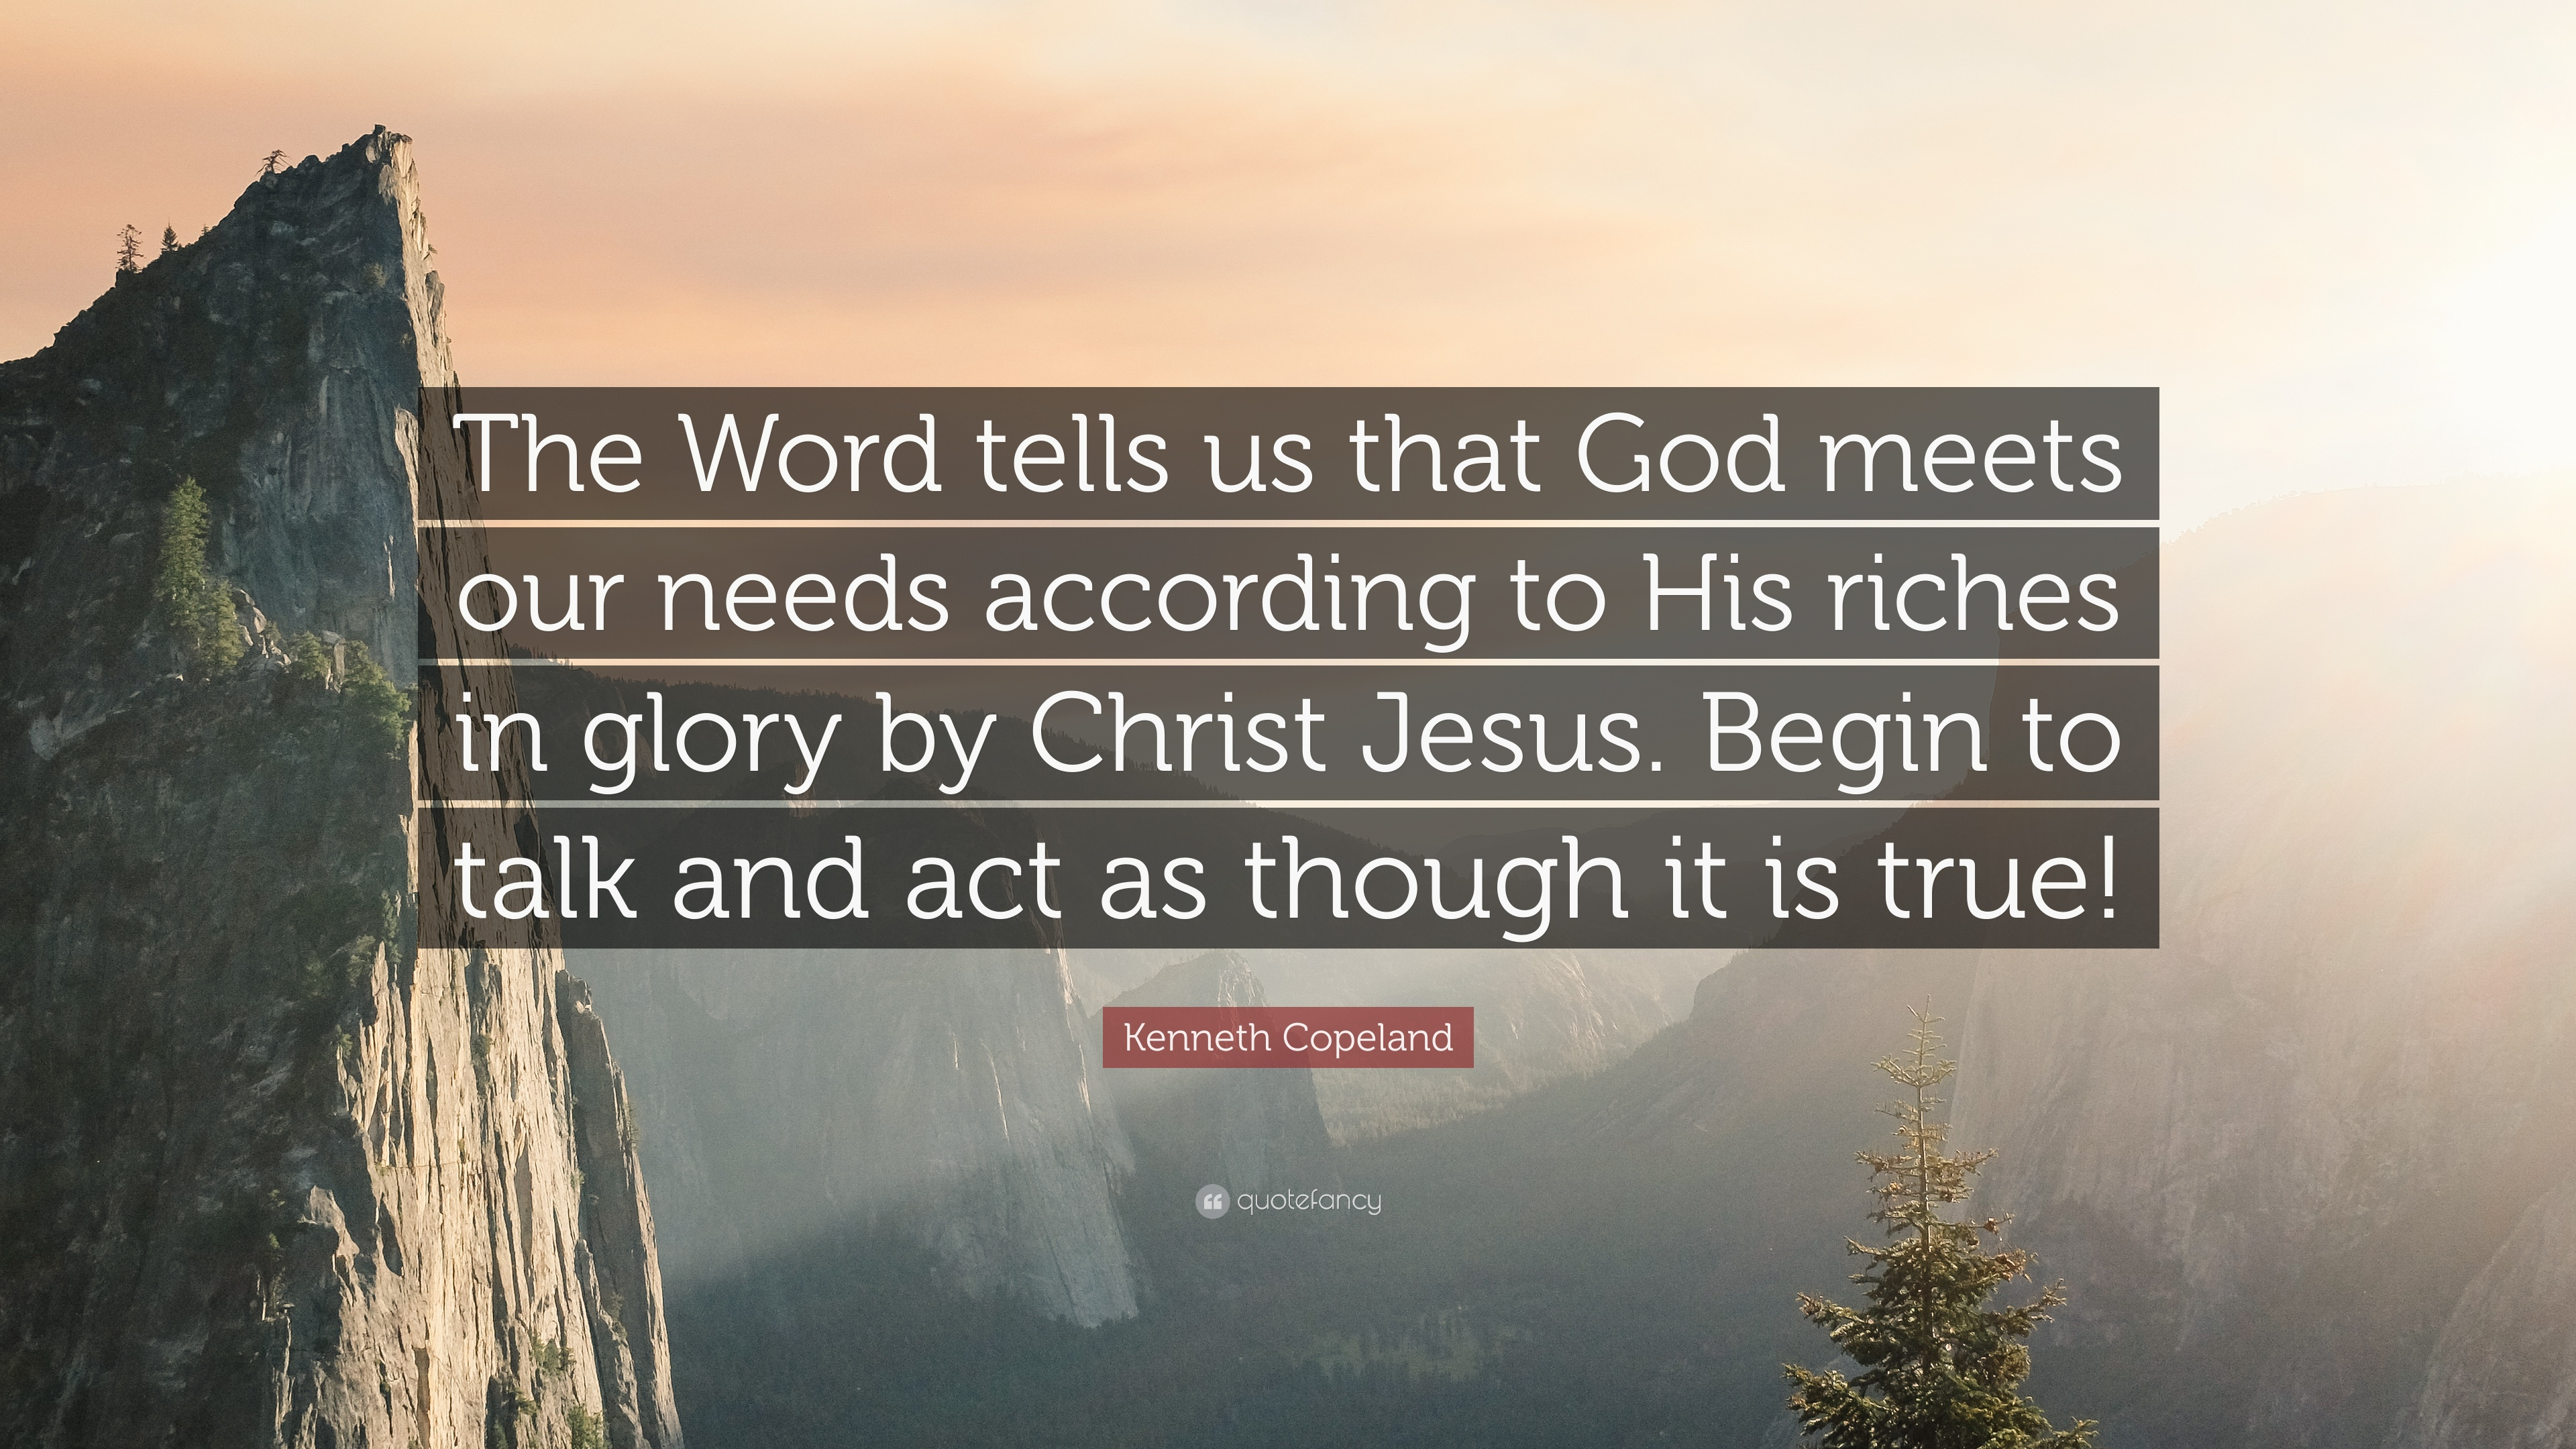 Jesus Inspirational Quotes Wallpaper Kenneth Copeland Quotes 30 Wallpapers Quotefancy